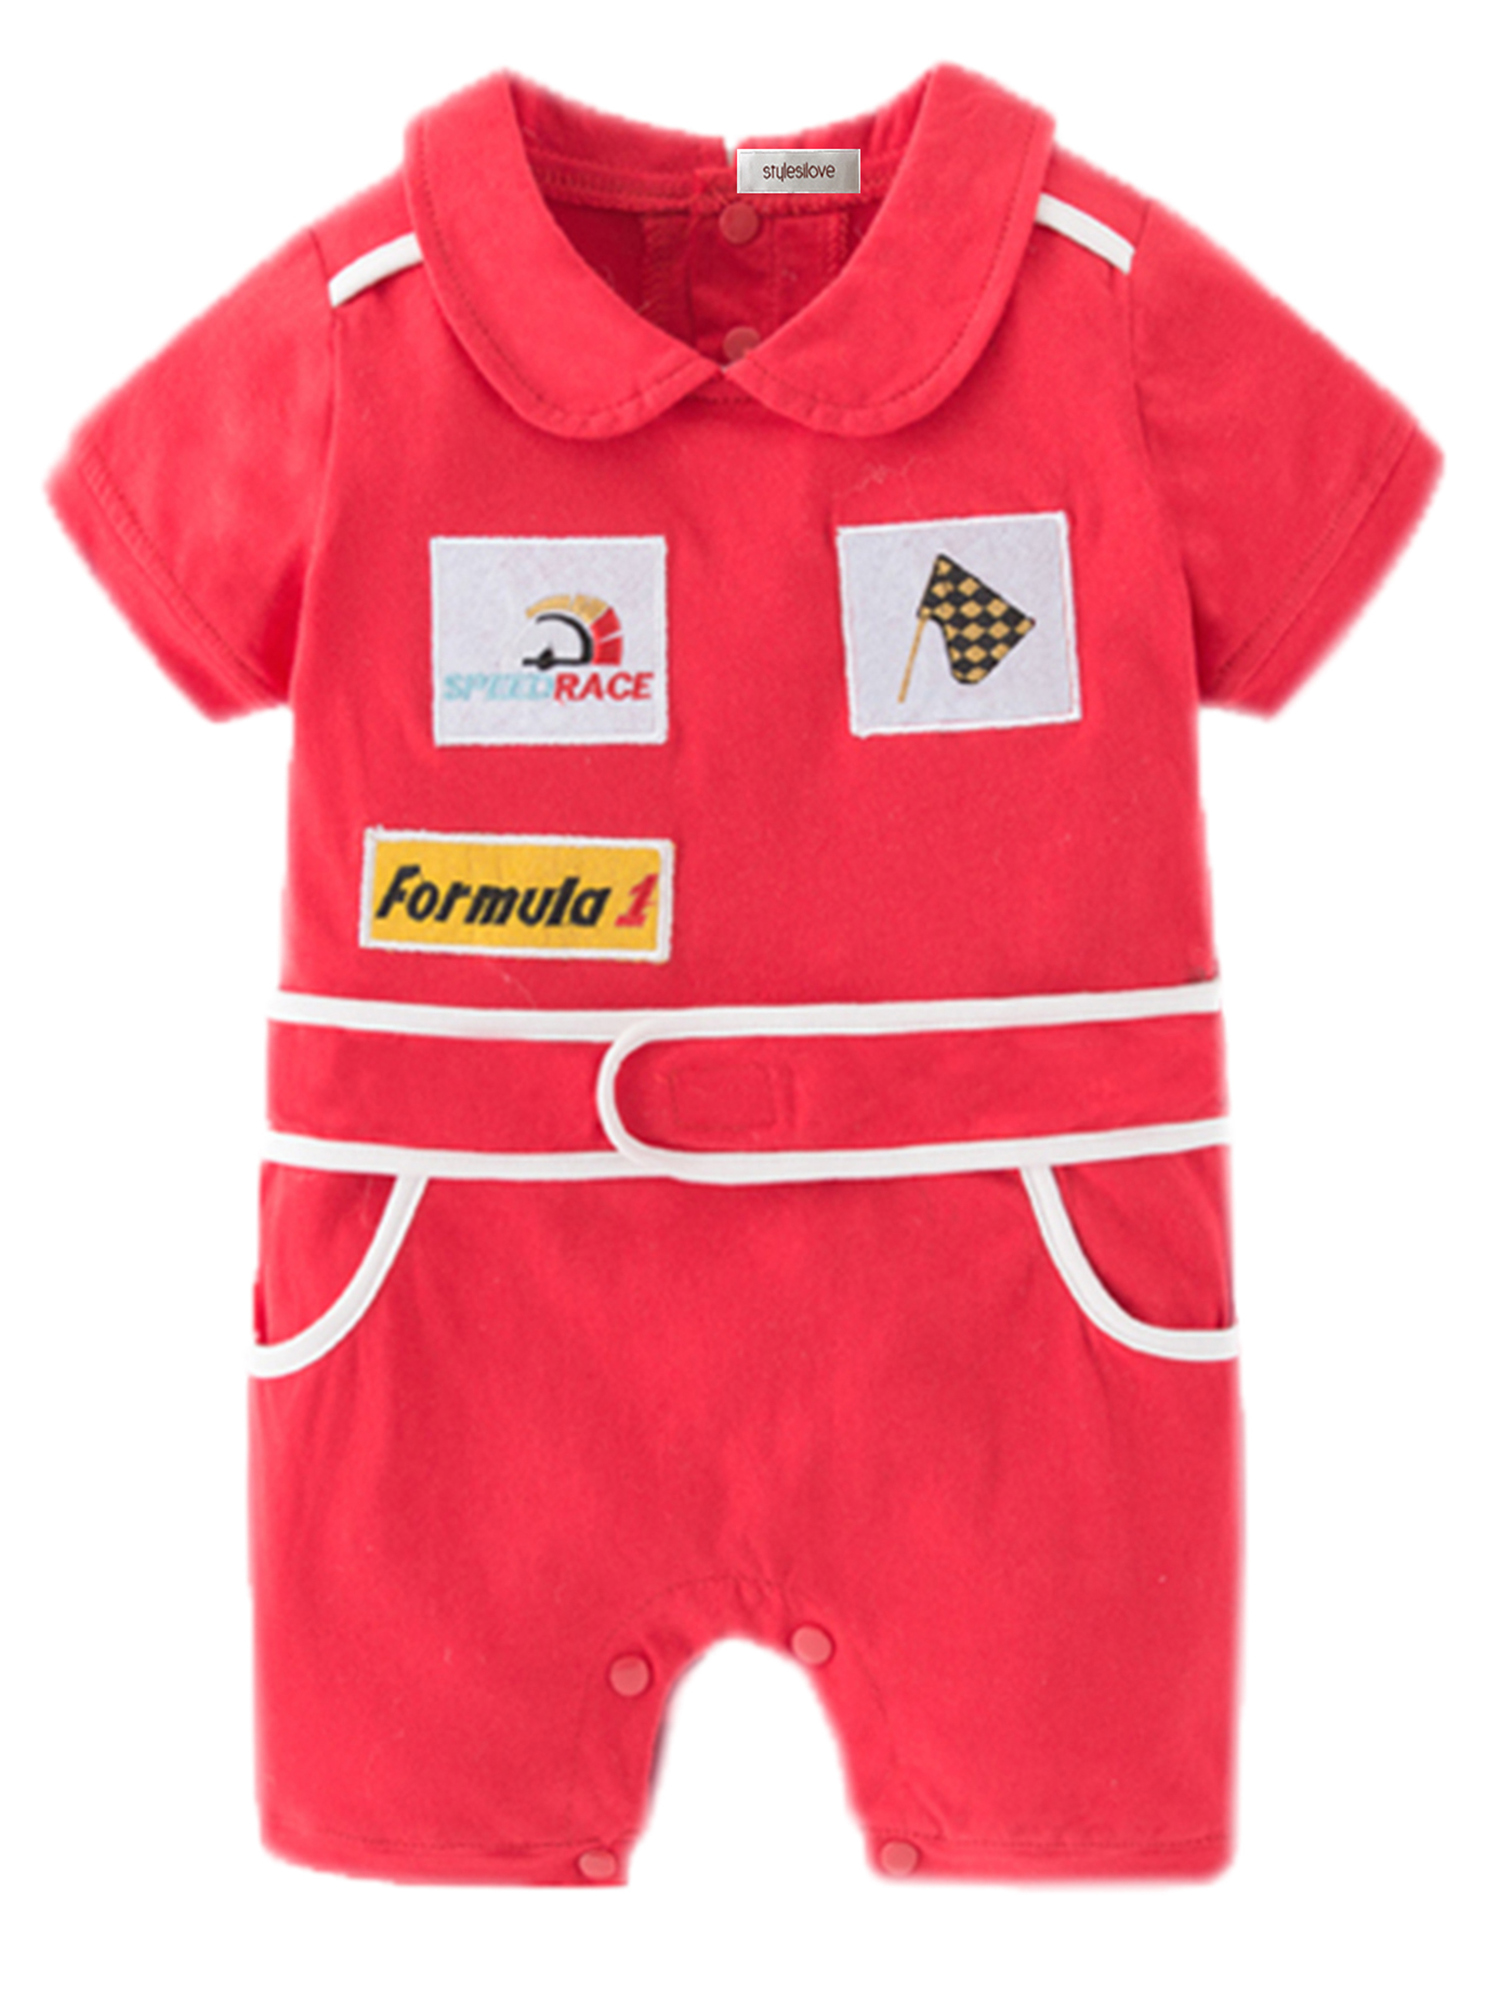 StylesILove Baby Boy Chic Red Car Racer Costume Romper (6-12 Months)